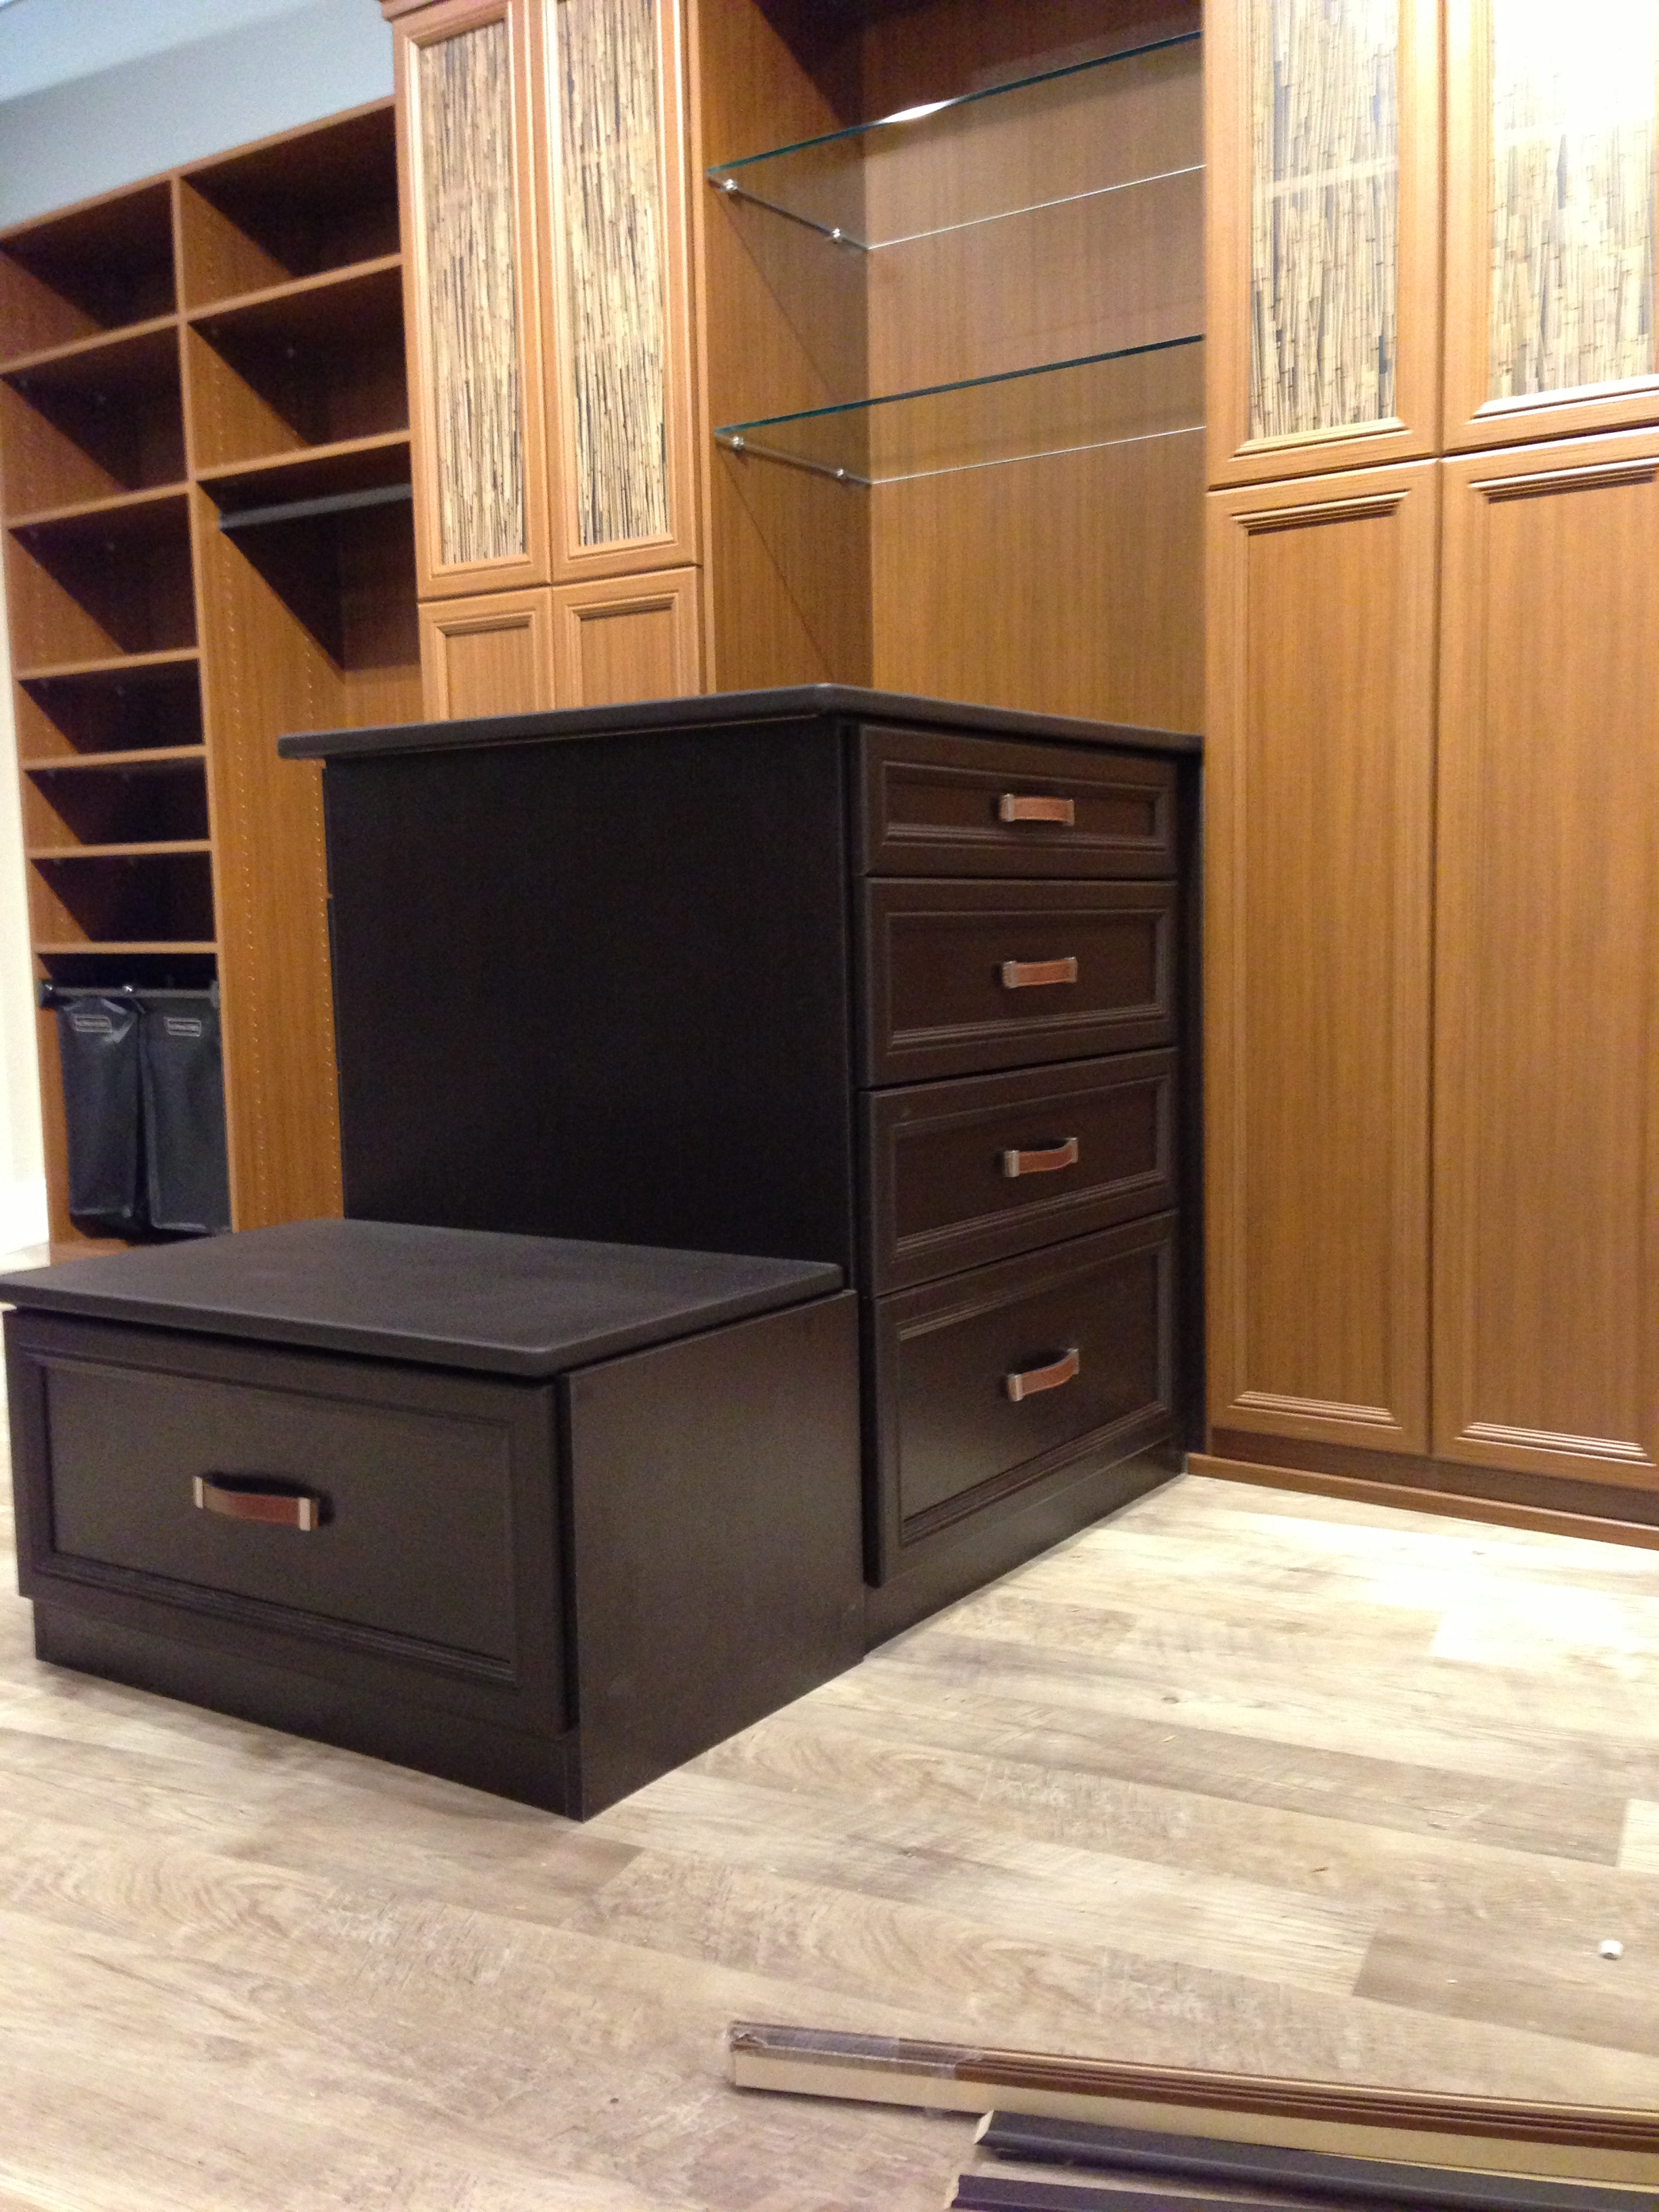 Leather Counter top - NJ.JPG